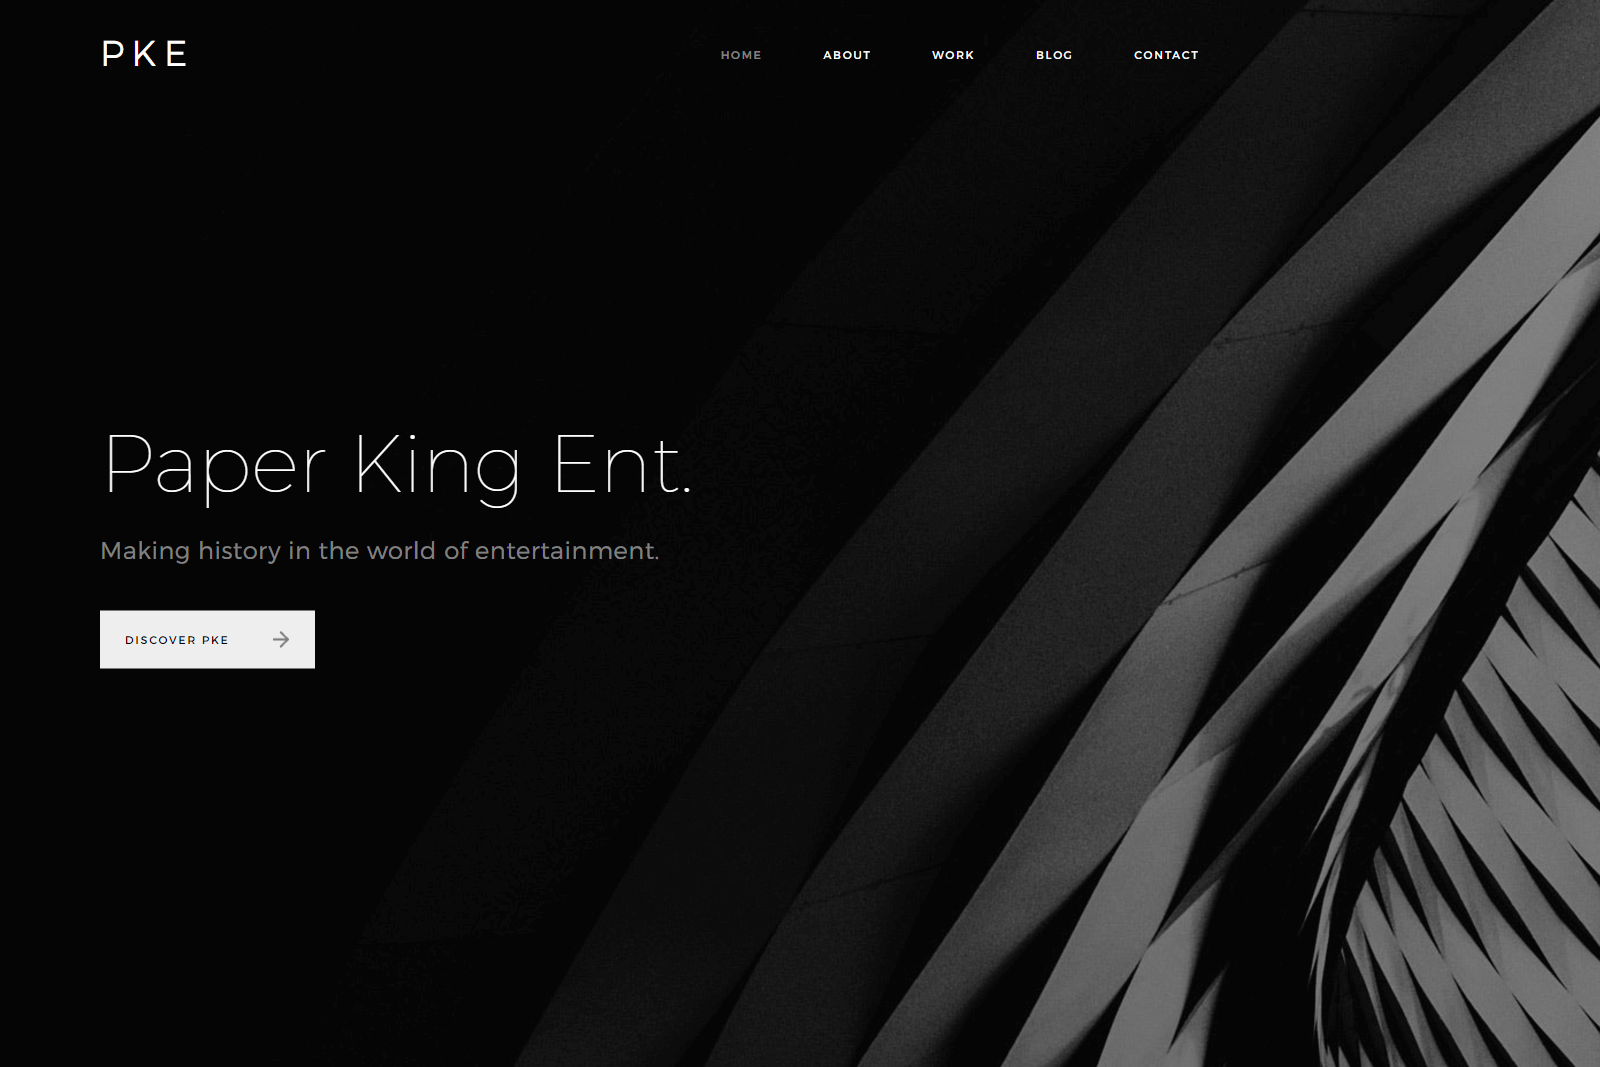 Paper King Entertainment Website Portfolio